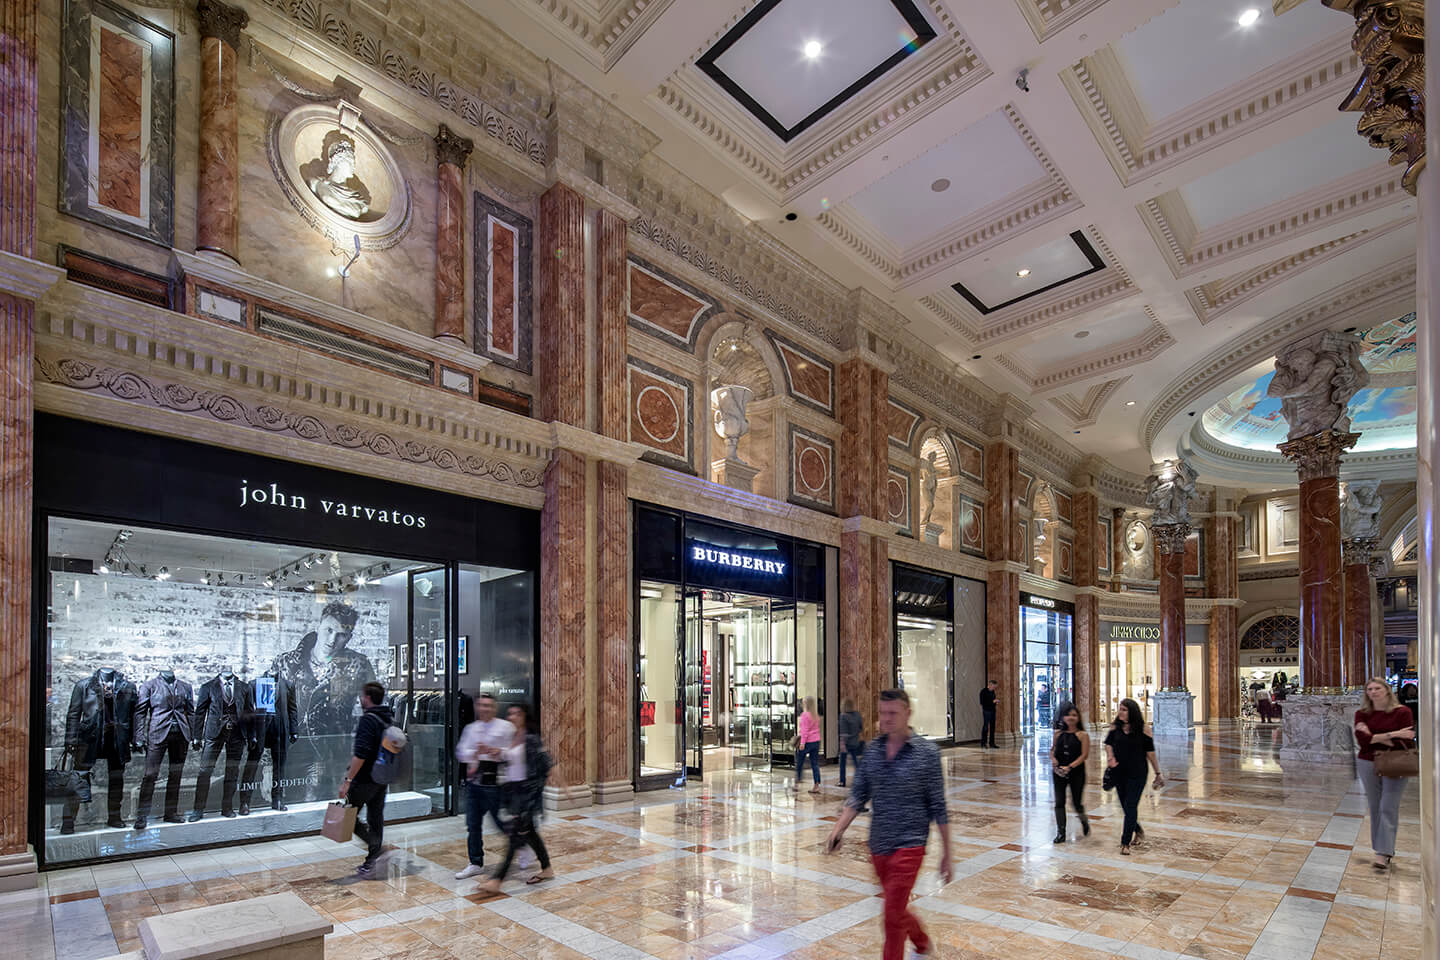 39788c1bd2 About The Forum Shops at Caesars Palace® - A Shopping Center in Las ...